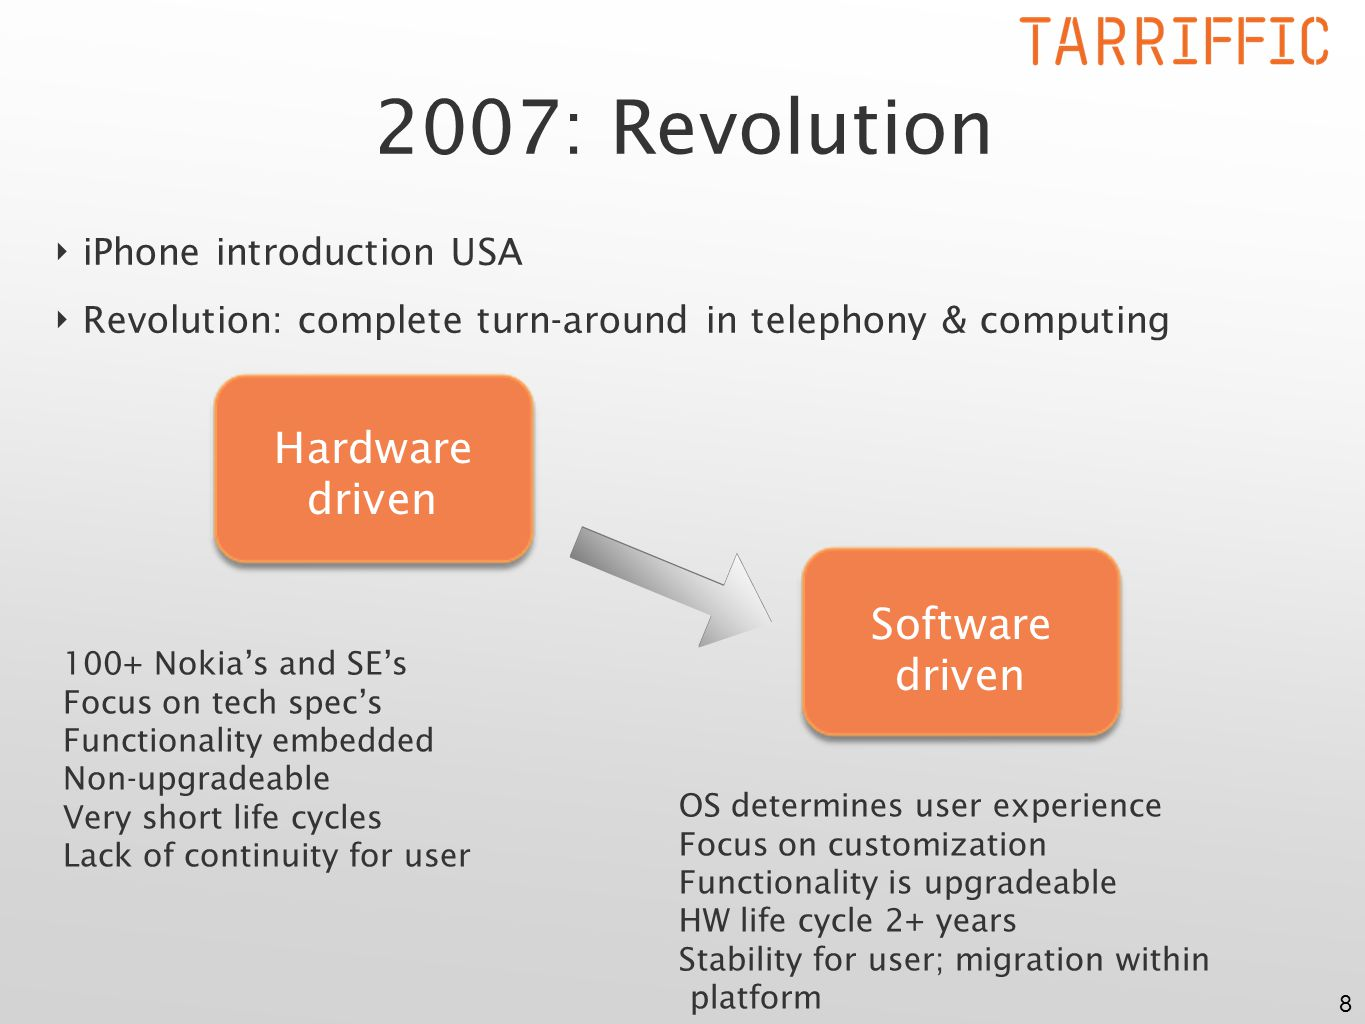 8 ‣ iPhone introduction USA ‣ Revolution: complete turn-around in telephony & computing 2007: Revolution Hardware driven Software driven 100+ Nokia's and SE's Focus on tech spec's Functionality embedded Non-upgradeable Very short life cycles Lack of continuity for user OS determines user experience Focus on customization Functionality is upgradeable HW life cycle 2+ years Stability for user; migration within platform